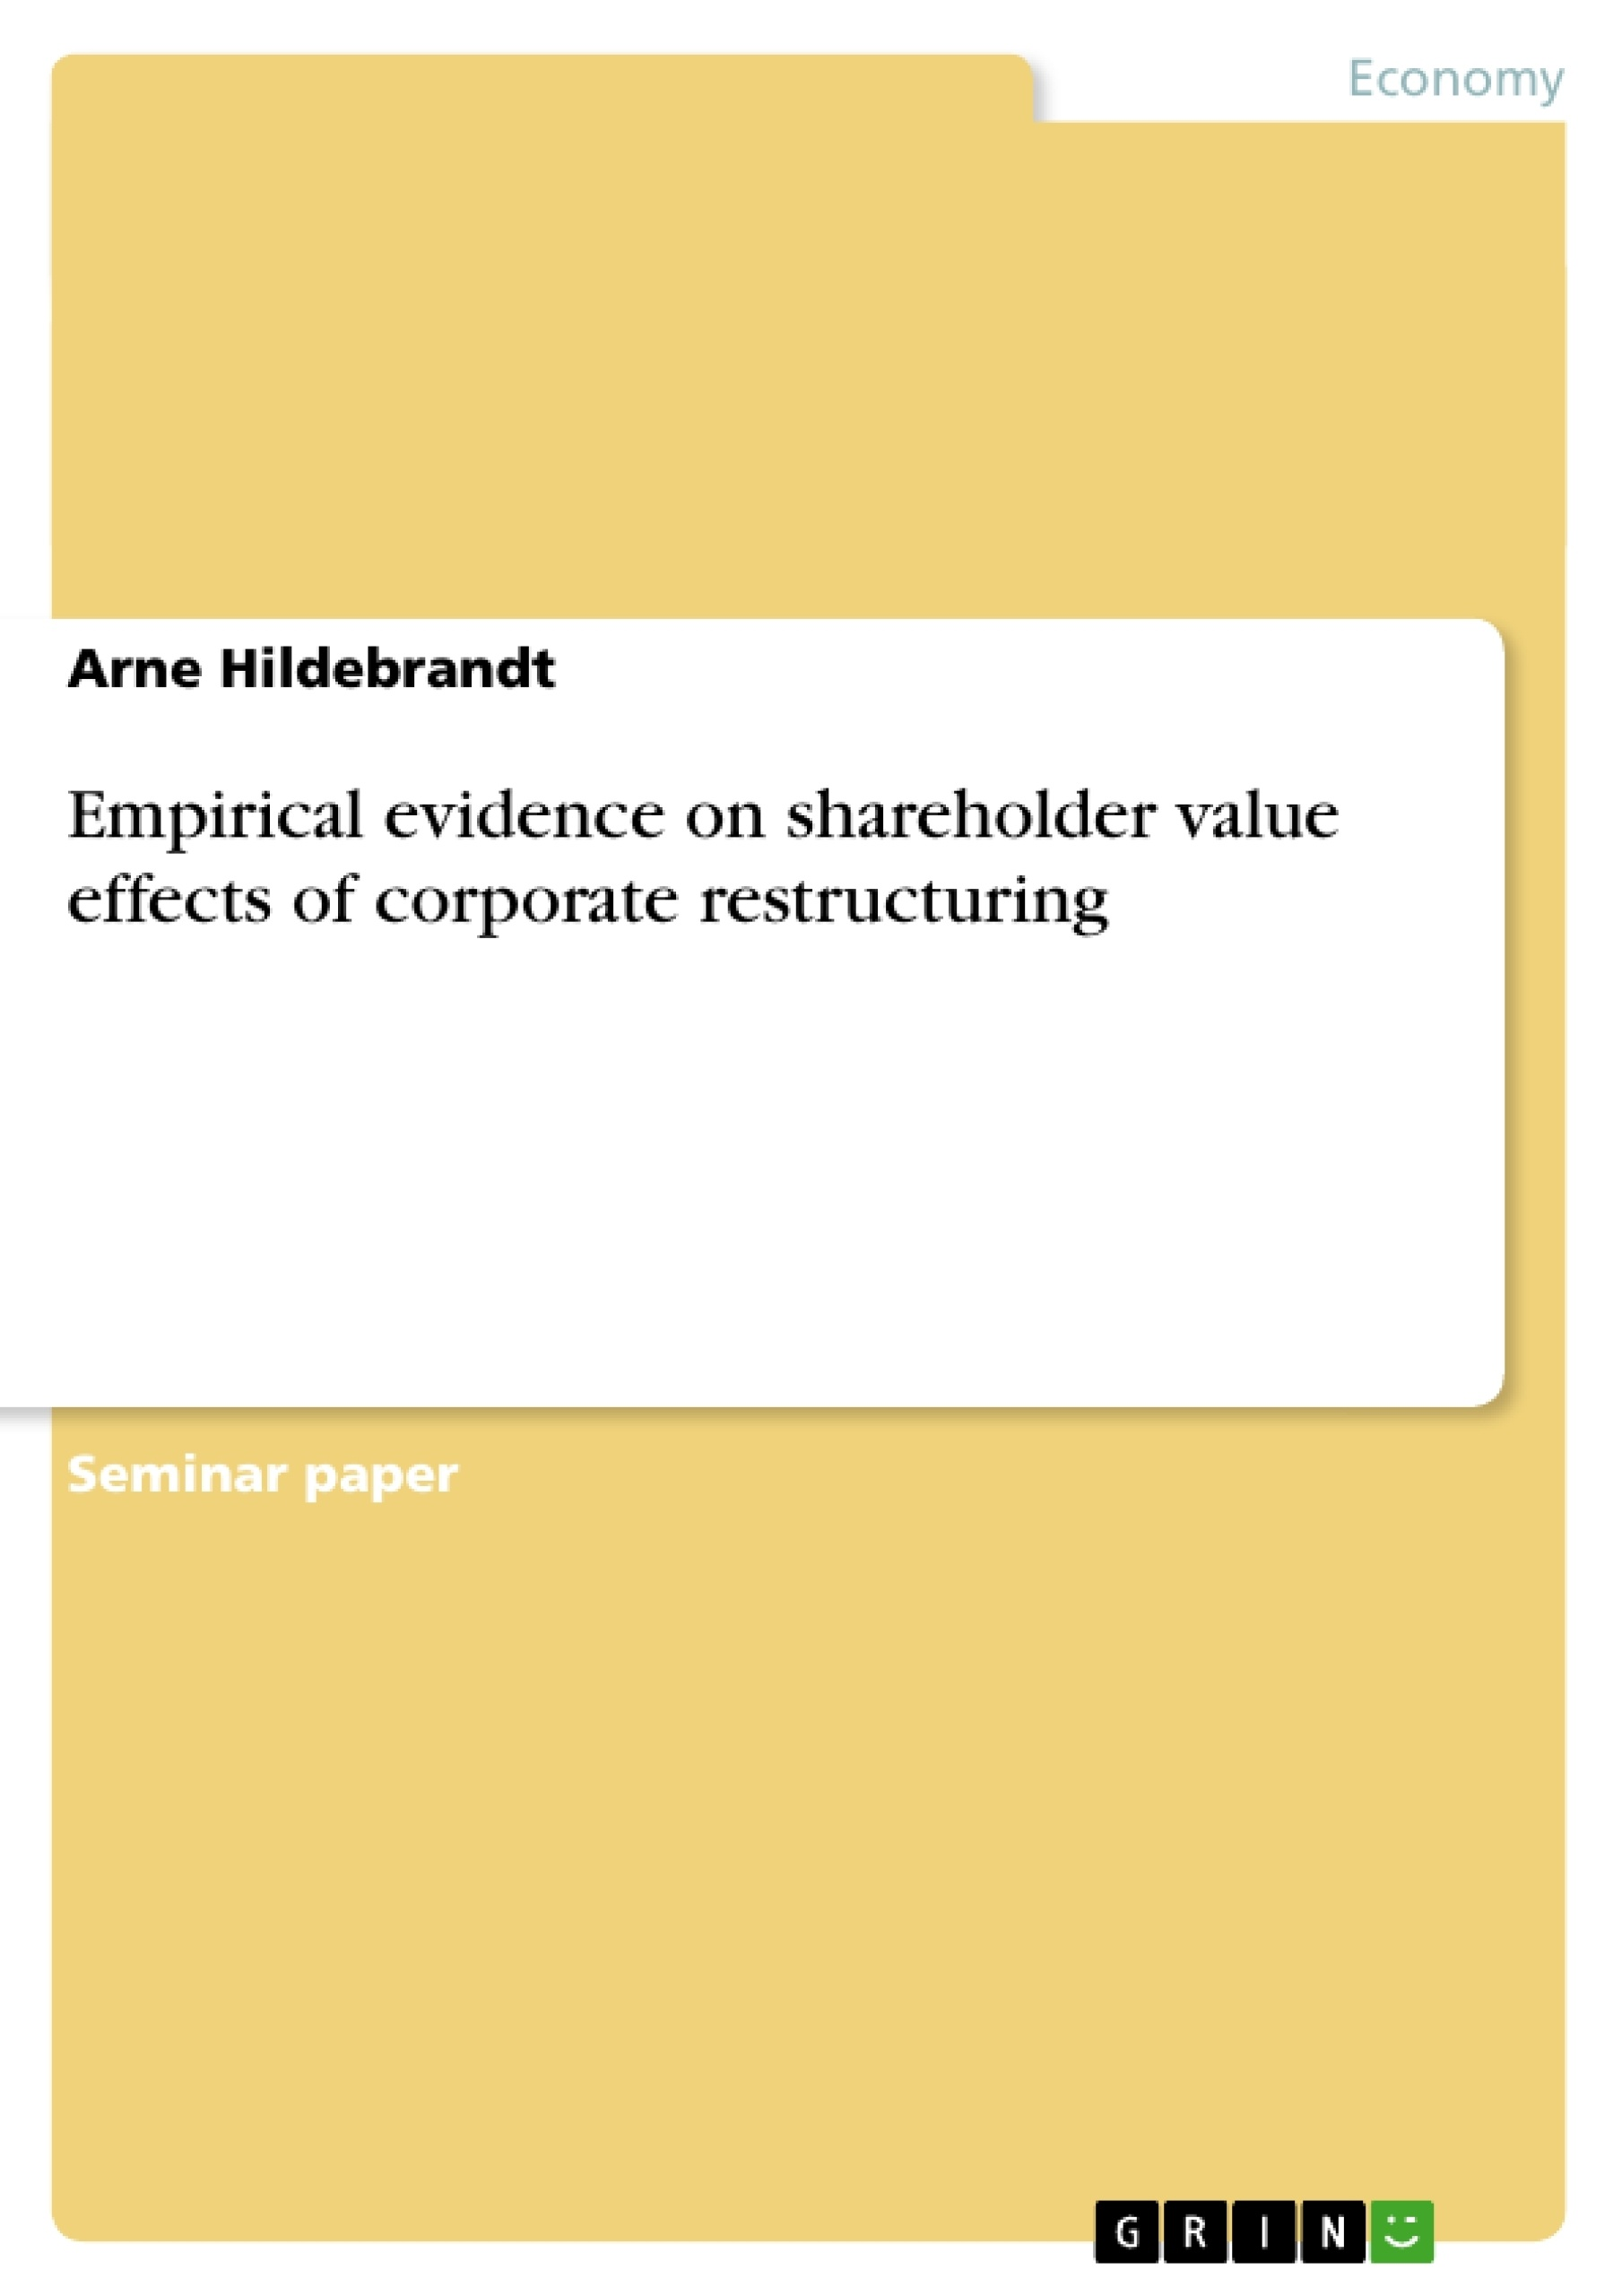 Title: Empirical evidence on shareholder value effects of corporate restructuring